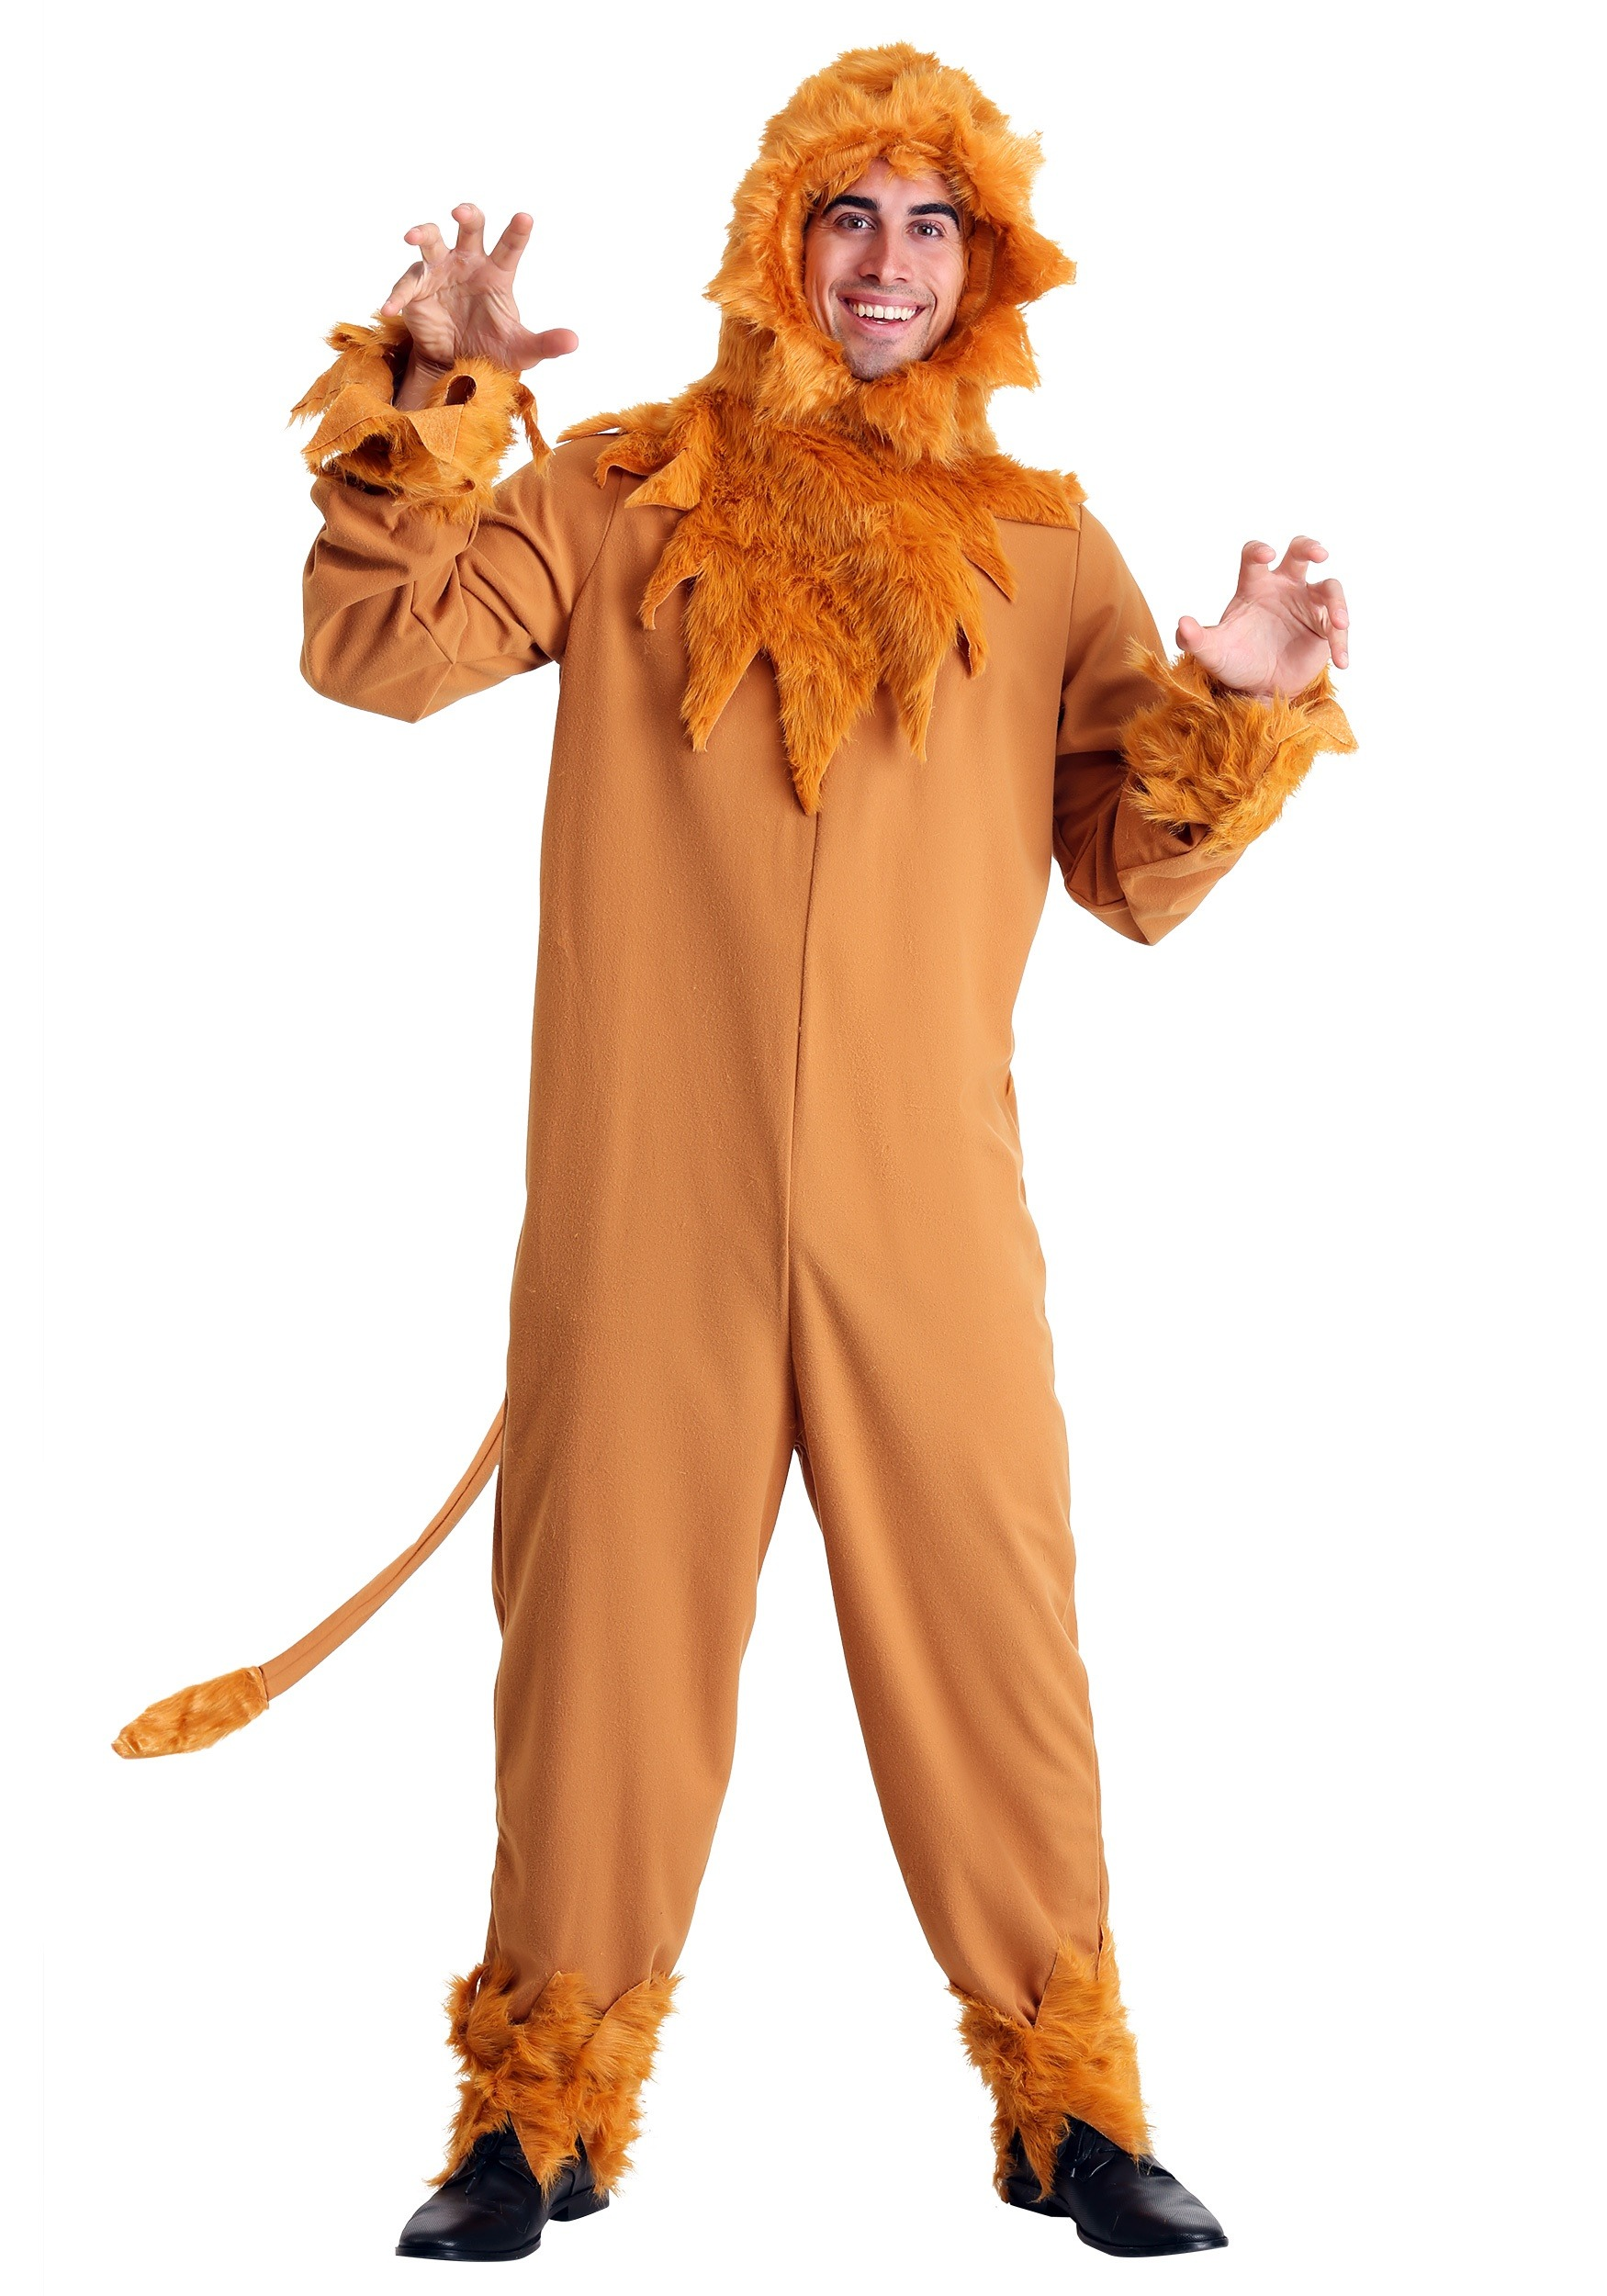 Wizard of Oz Costumes - Adult, Child Wizard of Oz Halloween Costume